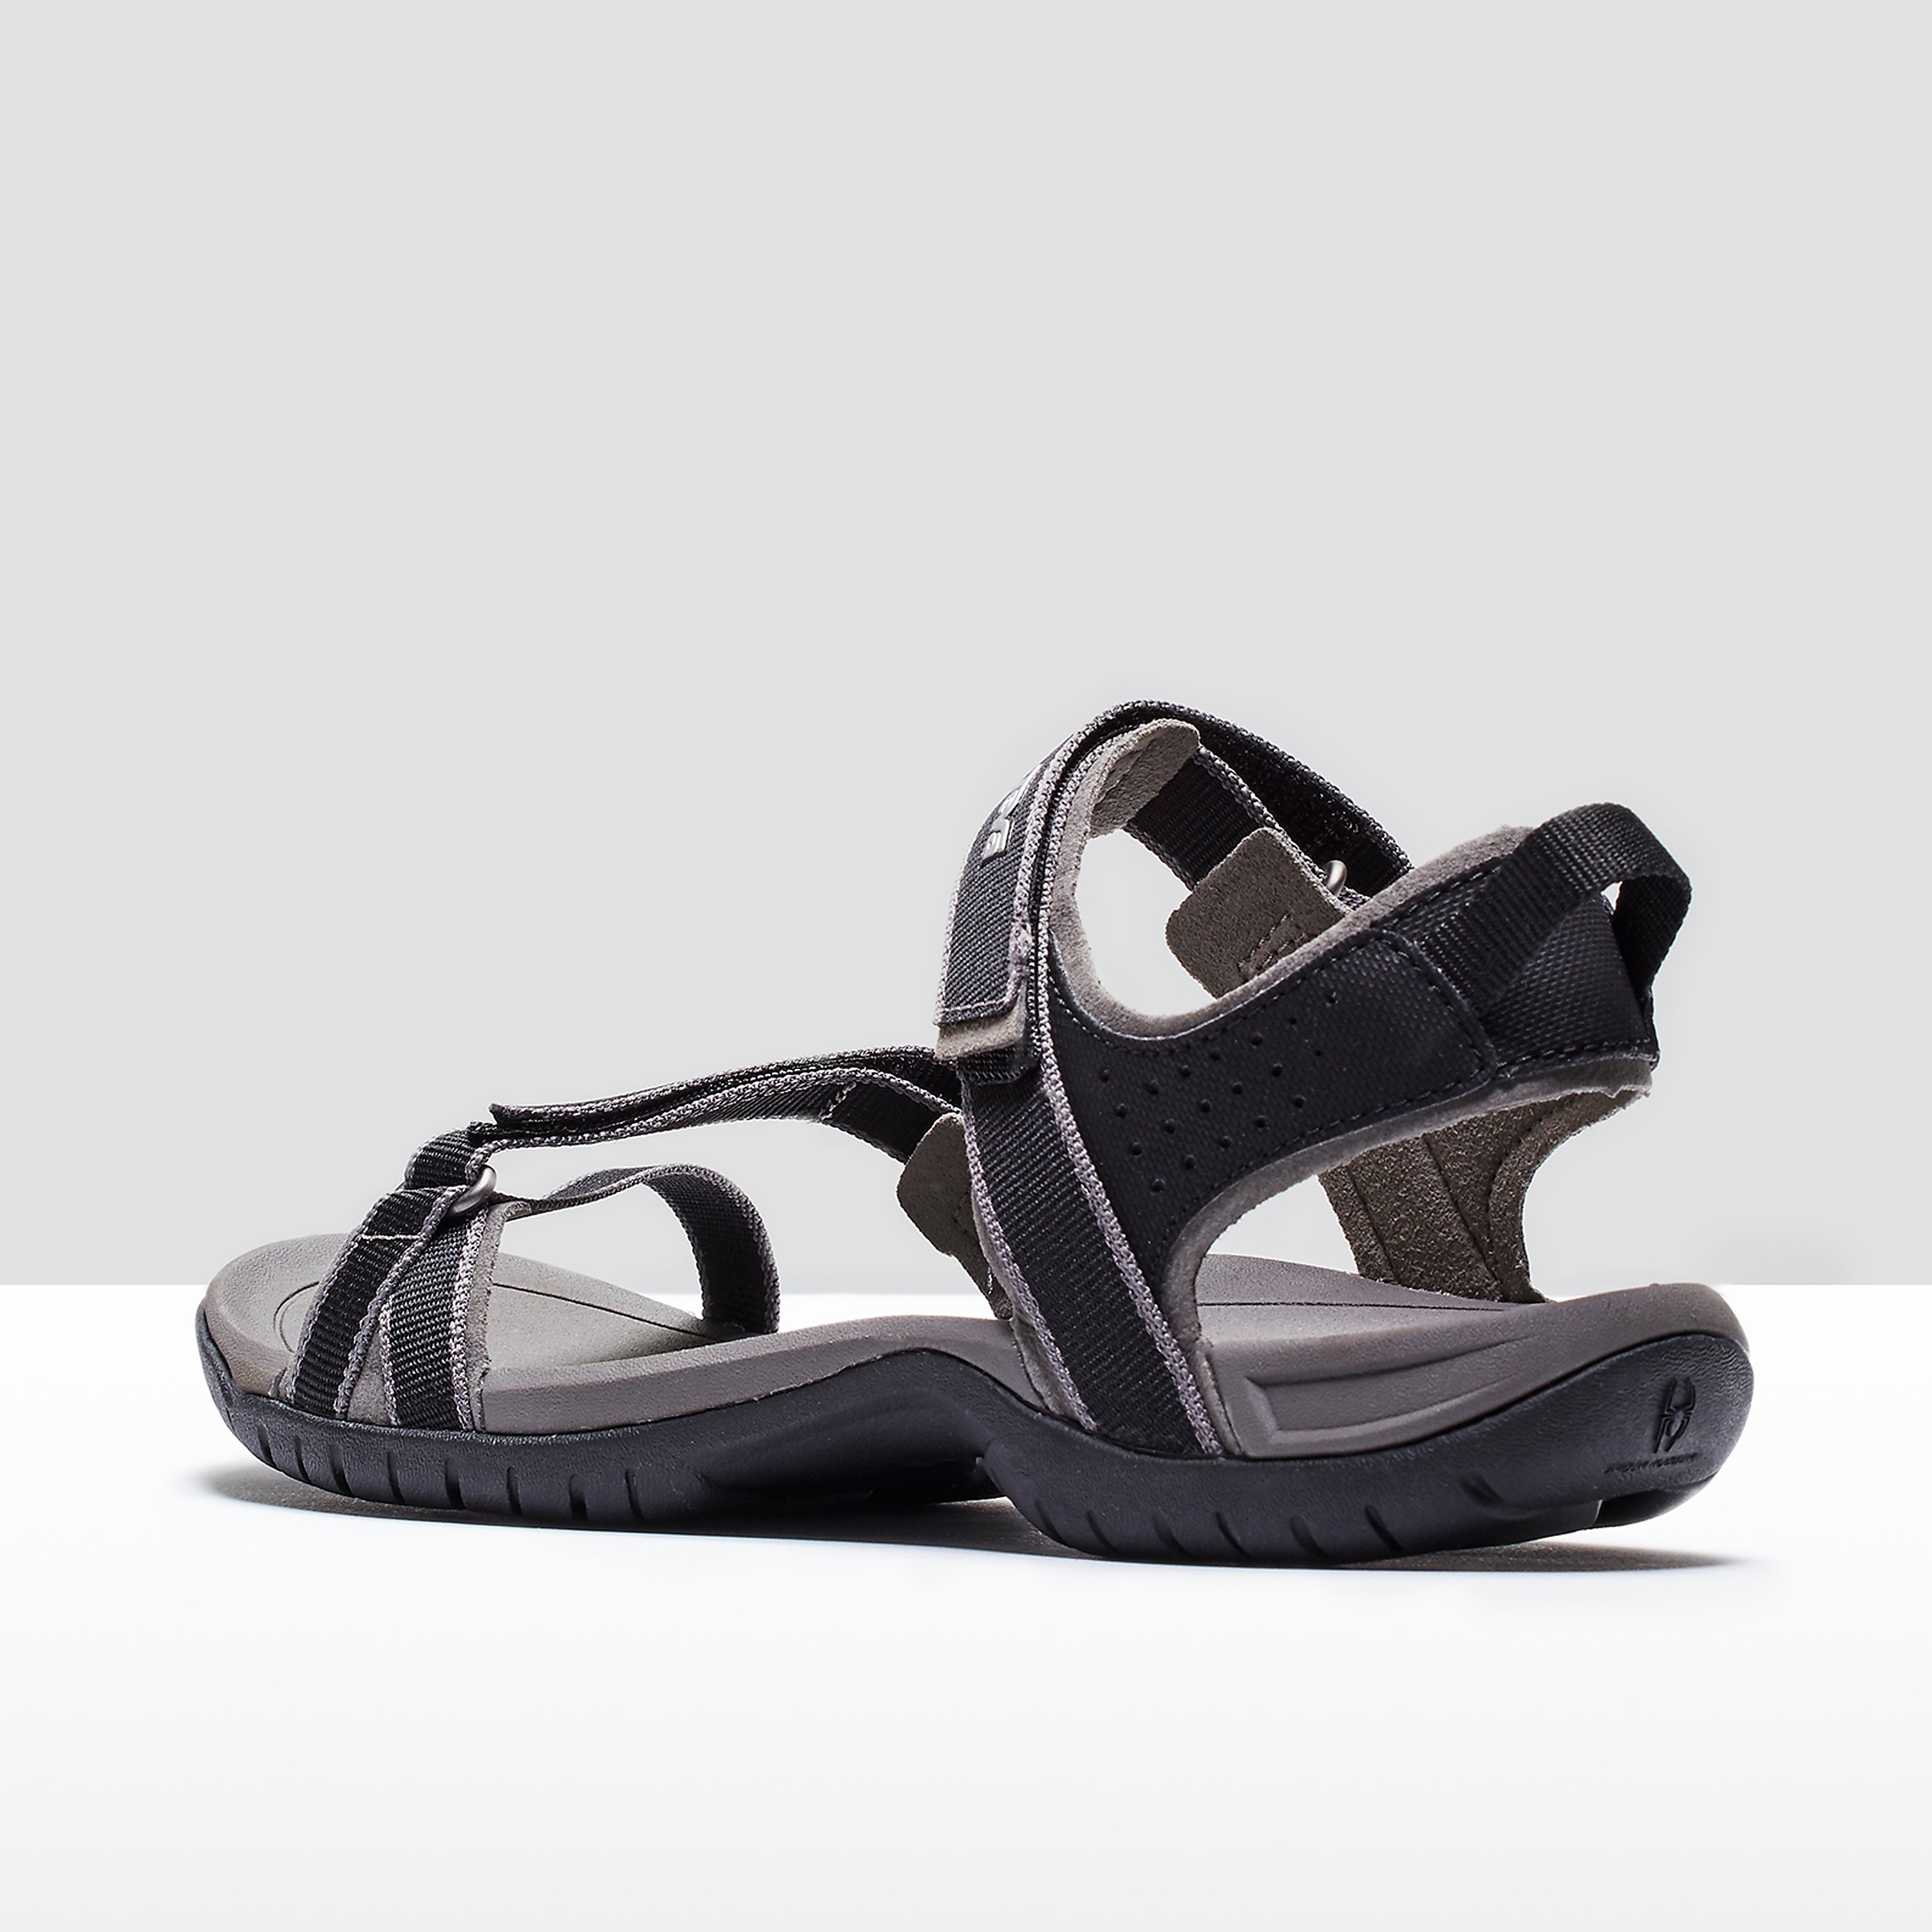 Teva Verra Ladies Sandal